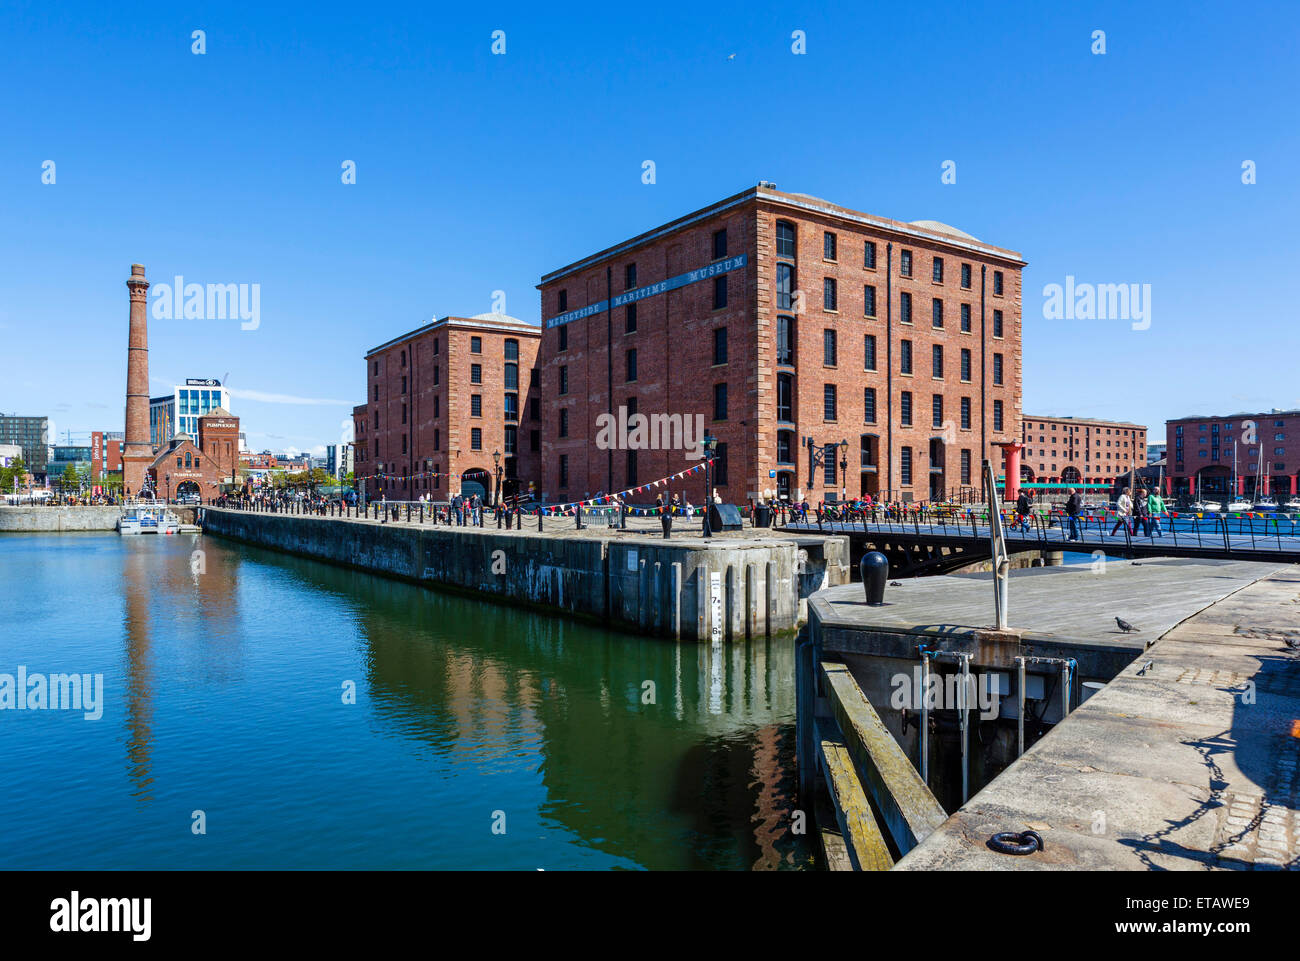 Hartley Quay and the Merseyside Maritime Museum, Albert Dock, Liverpool, Merseyside, England, UK - Stock Image